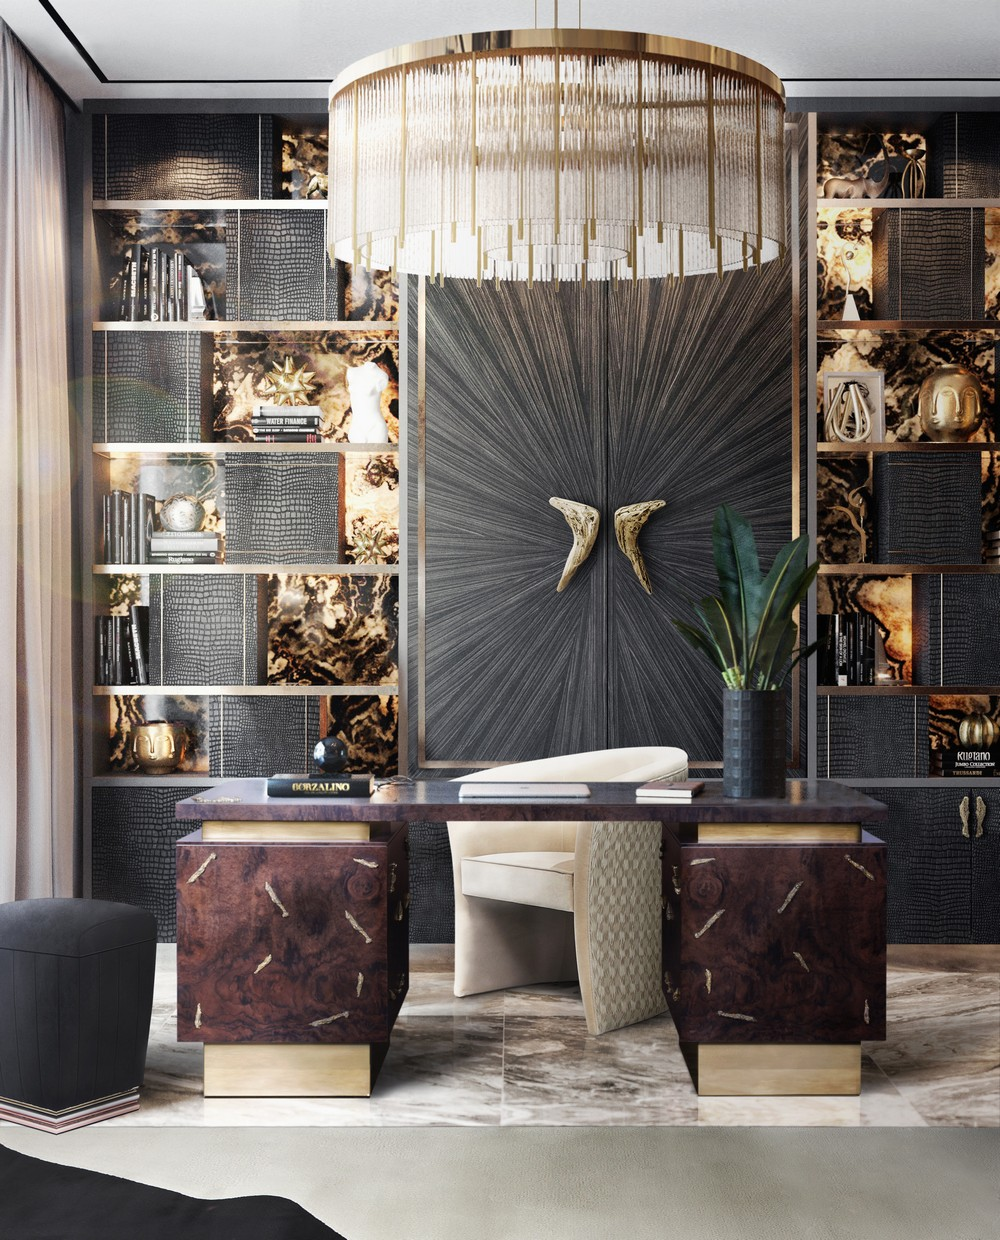 Fall Trends 2020 Personalize Your Home with Sublime Design Details 7 fall trends Fall Trends 2020: Personalize Your Home with Sublime Design Details Fall Trends 2020 Personalize Your Home with Sublime Design Details 7